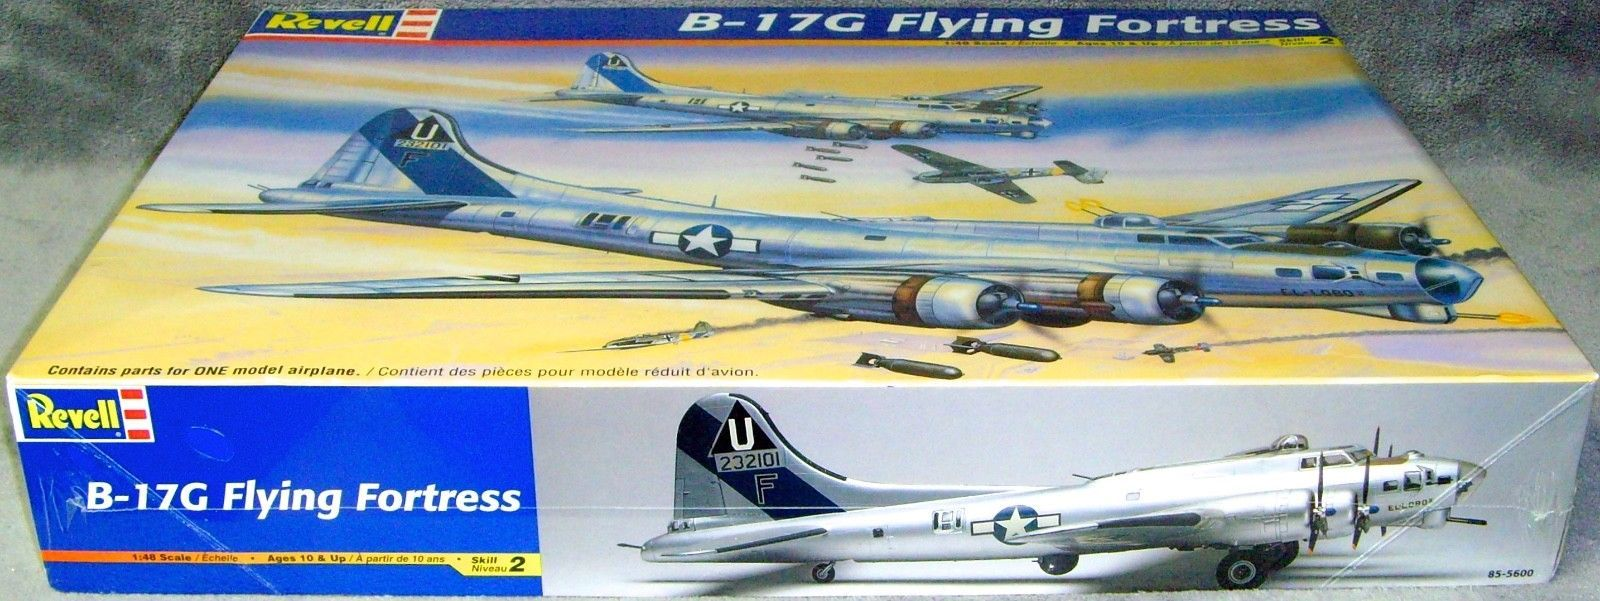 Vintage•2004•New•Sealed•Revell•B-17G Flying Fortress•1:48 Scale•Model•# 85-5600